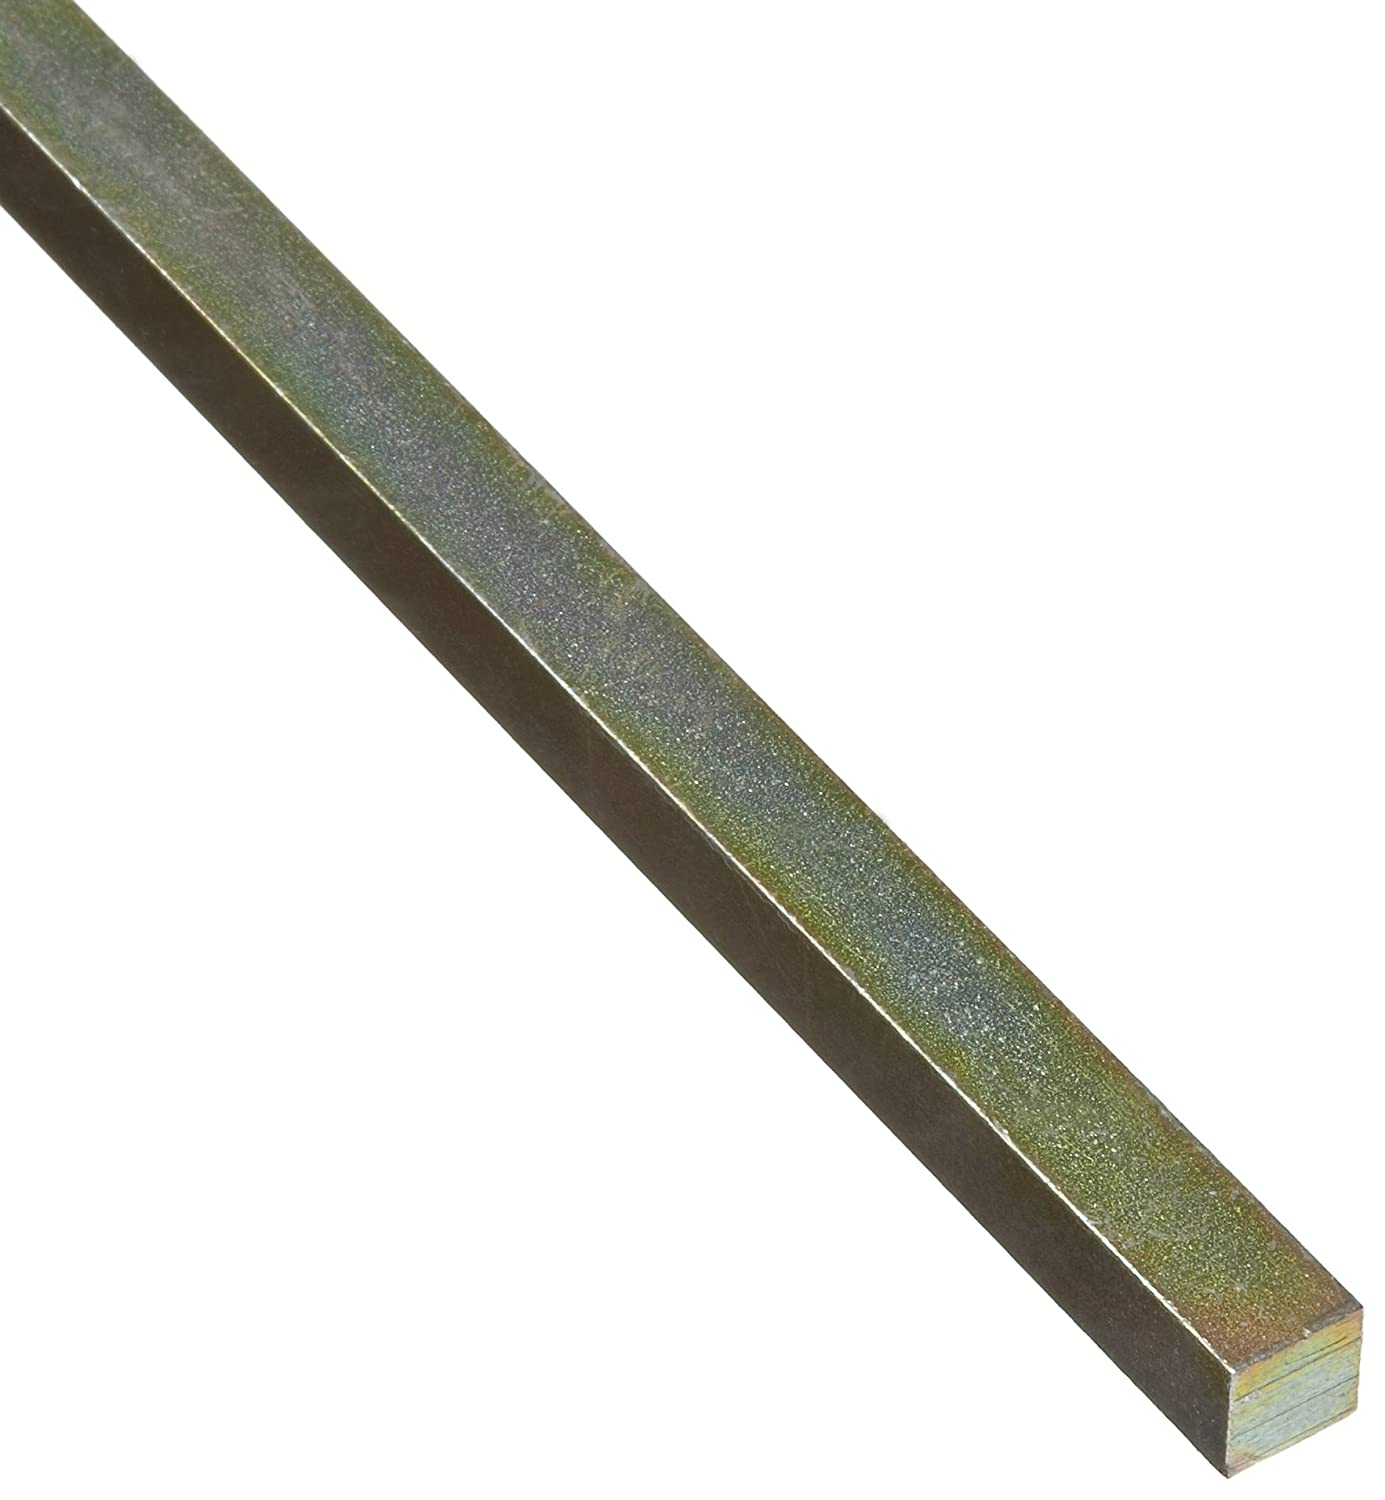 Gold Dichromate Finish Pack of 6 Standard Tolerance Metric 12 Length 5 mm Width Steel Key Stock 5 mm Thickness